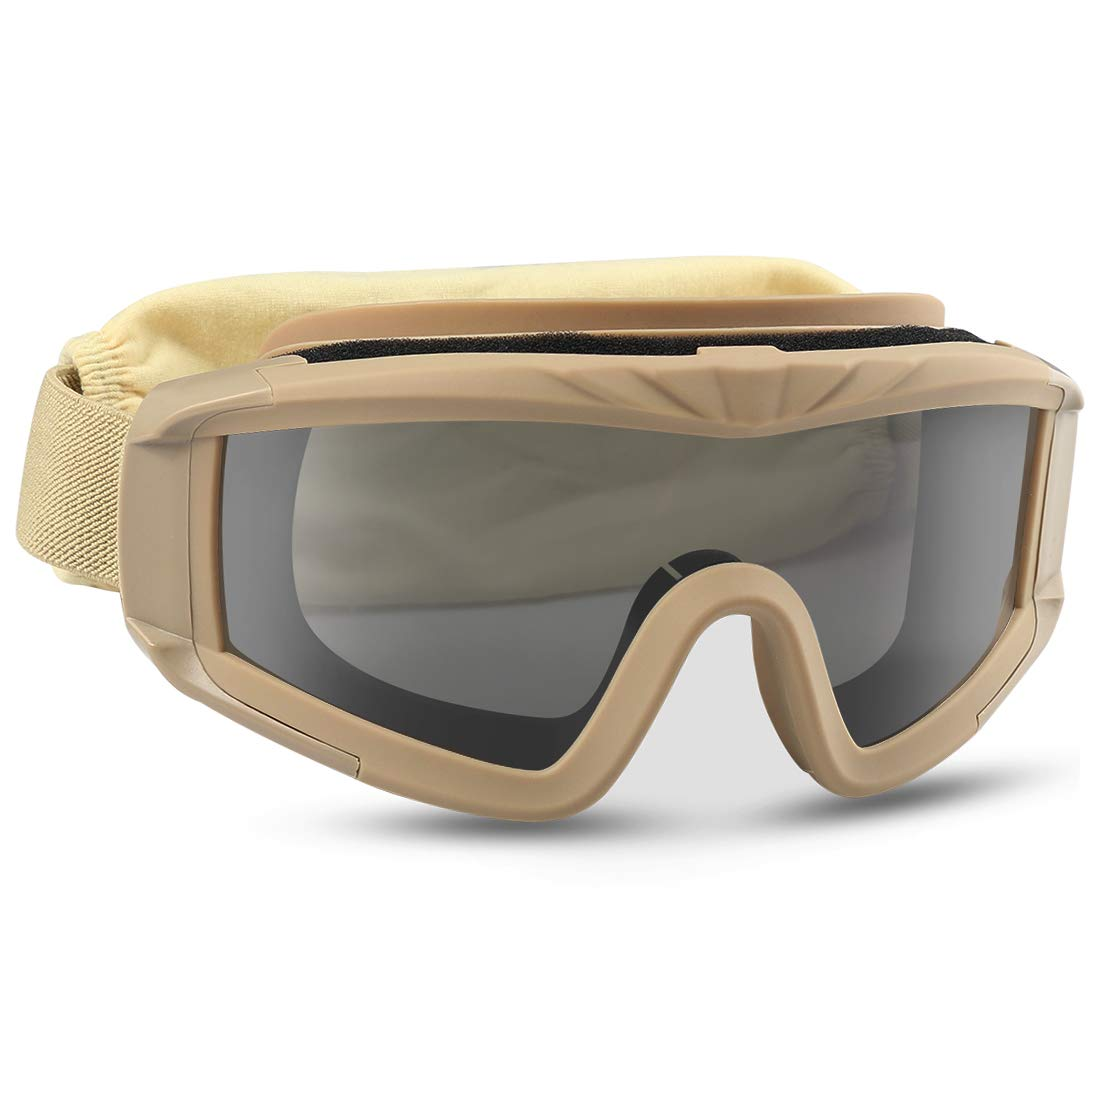 XAegis Airsoft Goggles, Tactical Safety Goggles Anti Fog Military Eyewear with 3 Interchangeable Lens for Paintball Riding Shooting Hunting Cycling - Tan by XAegis